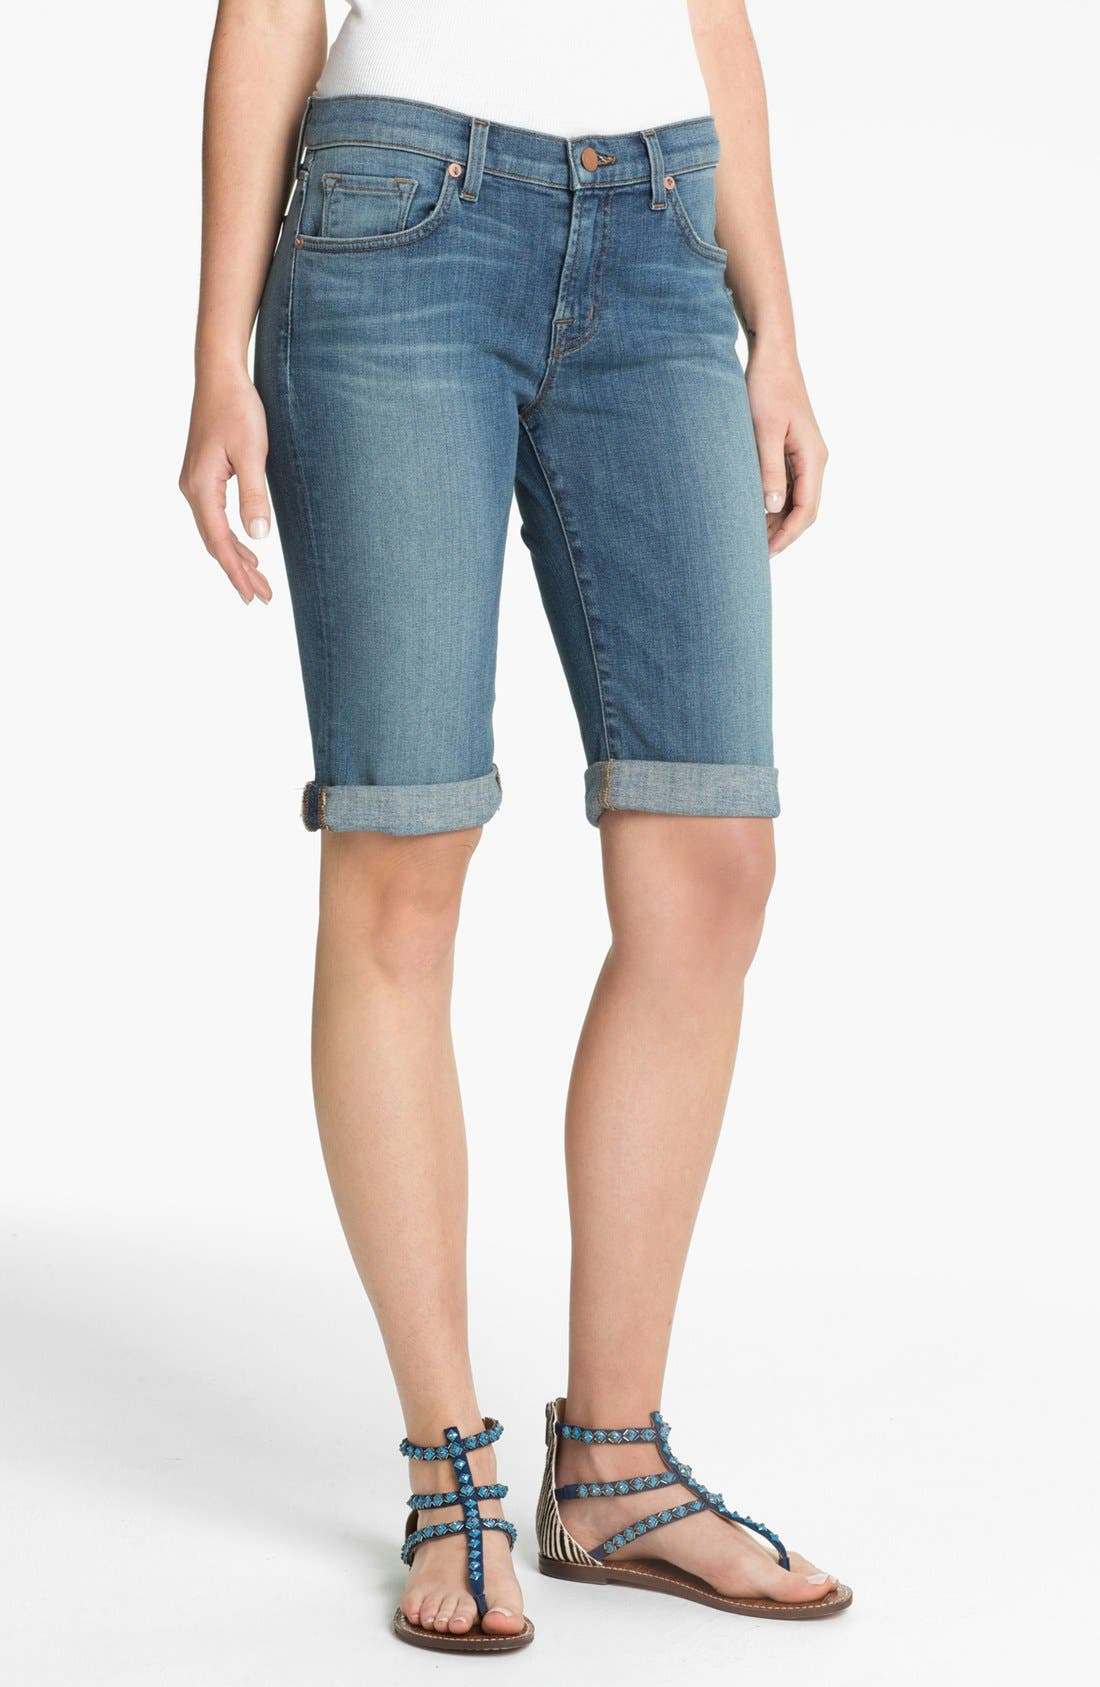 Alternate Image 1 Selected - J Brand Cuff Stretch Denim Shorts (Revenge)